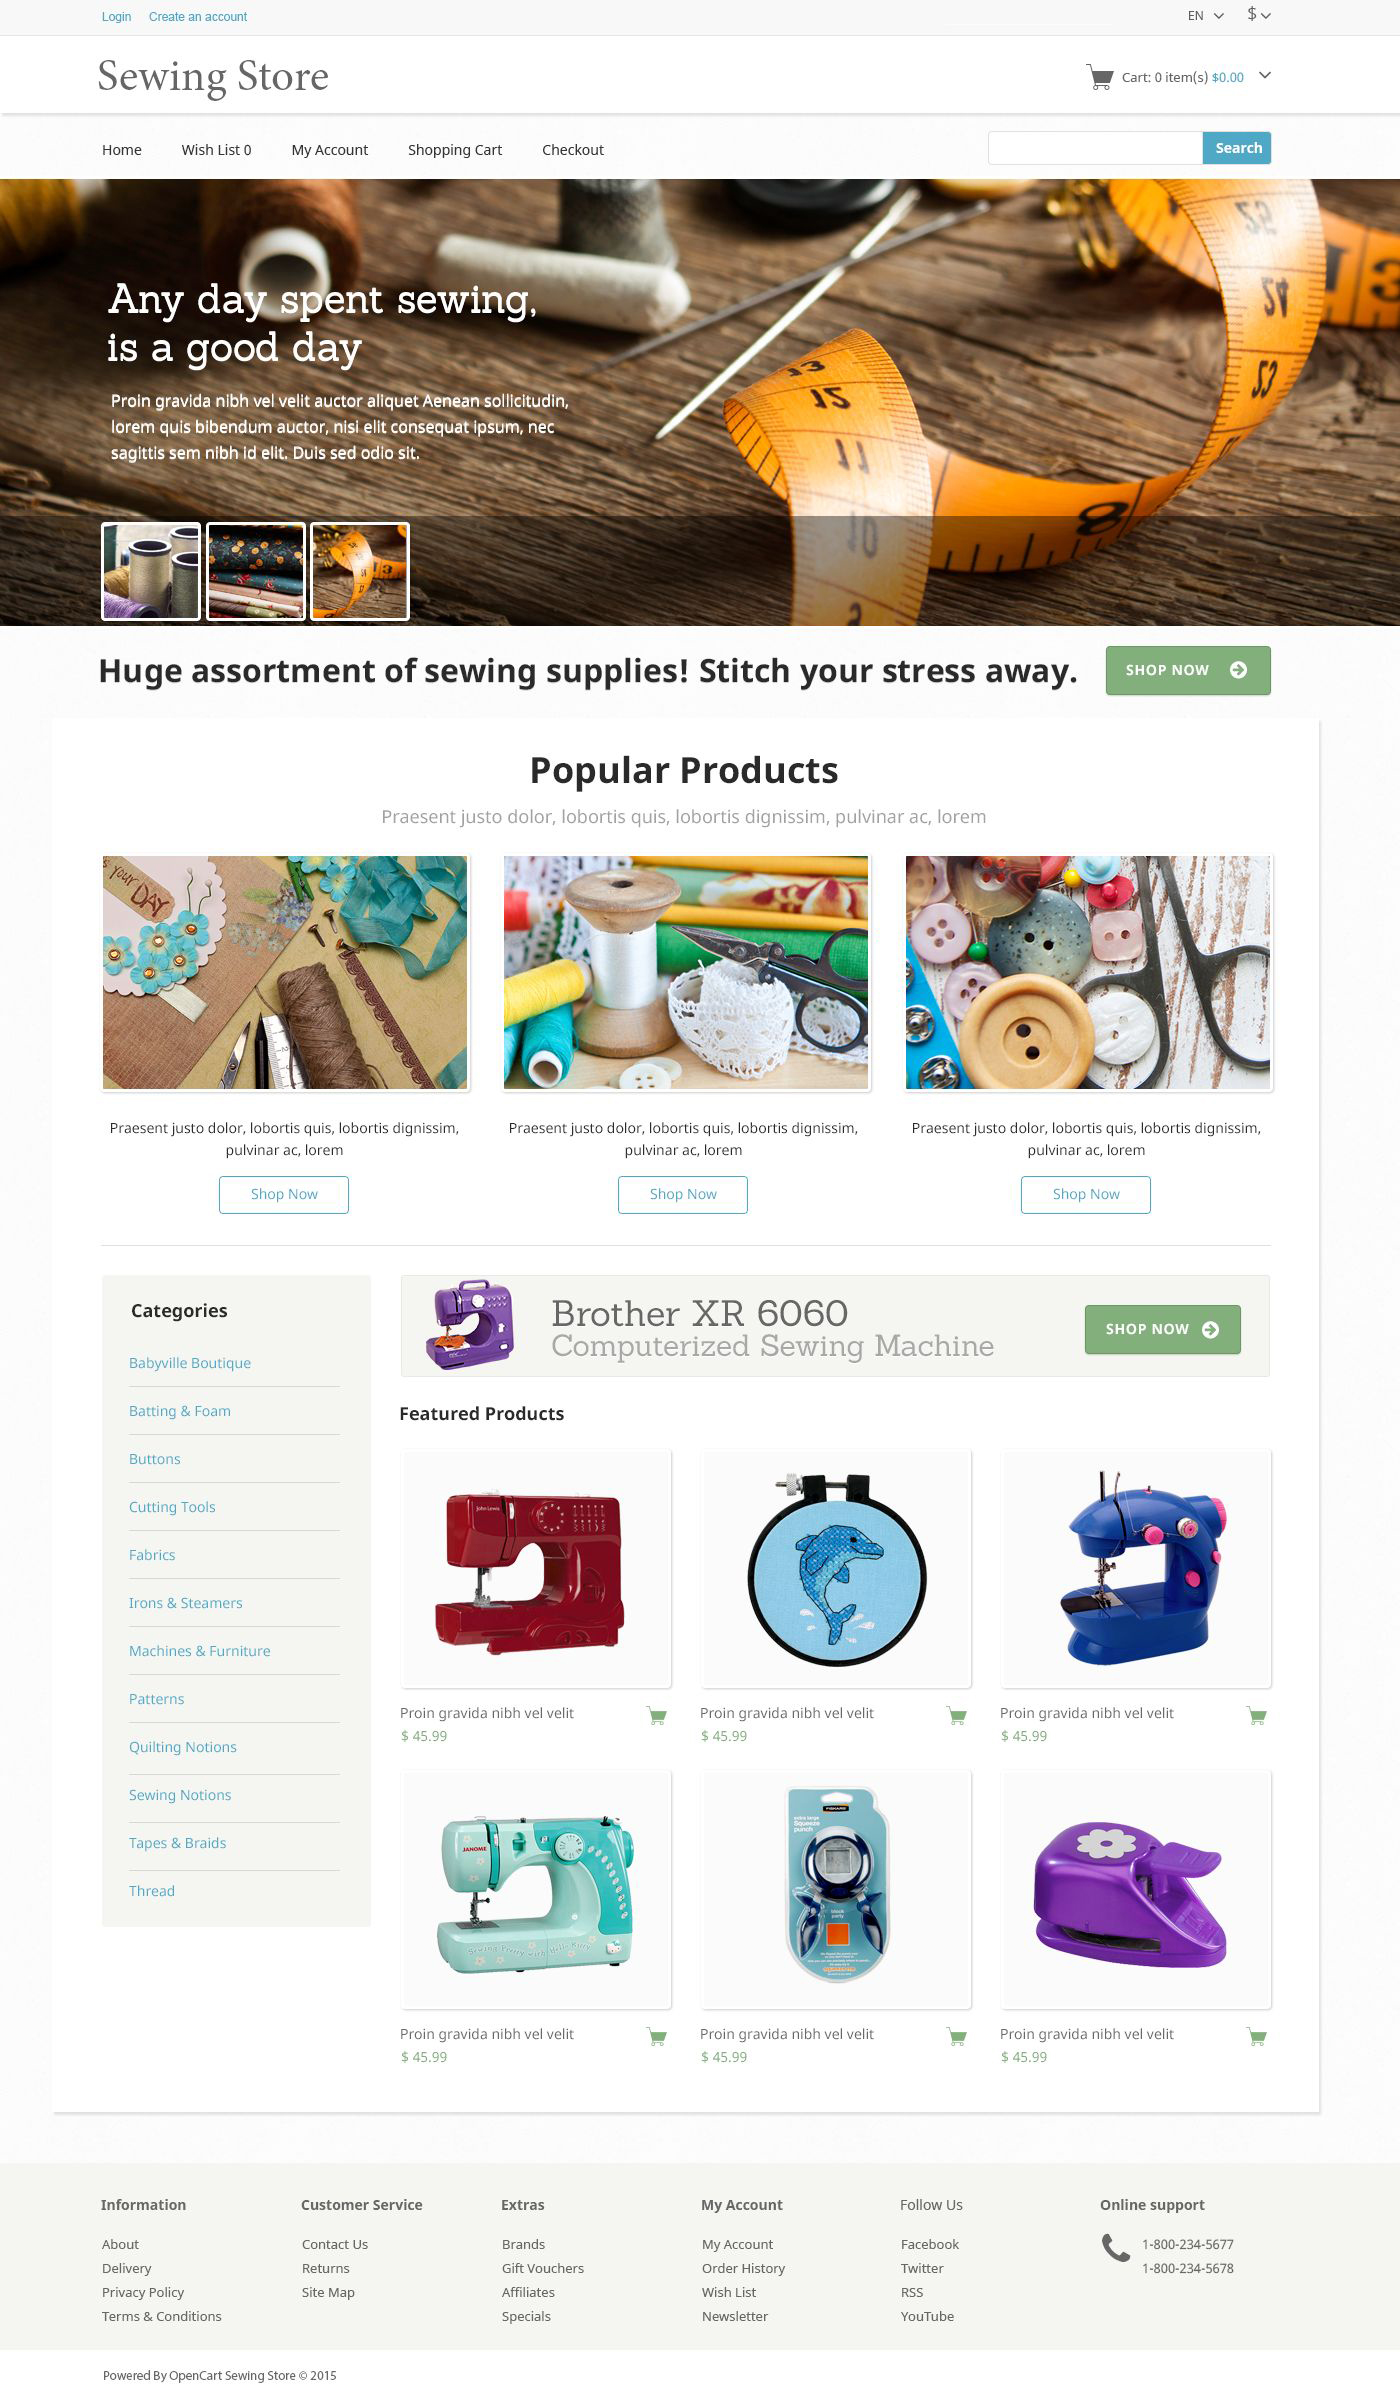 The Sewing Store OpenCart Design 53305, one of the best OpenCart templates of its kind (most popular, hobbies & crafts), also known as sewing store OpenCart template, silks OpenCart template, woollen OpenCart template, cloth OpenCart template, light OpenCart template, fabric OpenCart template, embroidery OpenCart template, buttons OpenCart template, decor OpenCart template, crafts and related with sewing store, silks, woollen, cloth, light, fabric, embroidery, buttons, decor, crafts, etc.